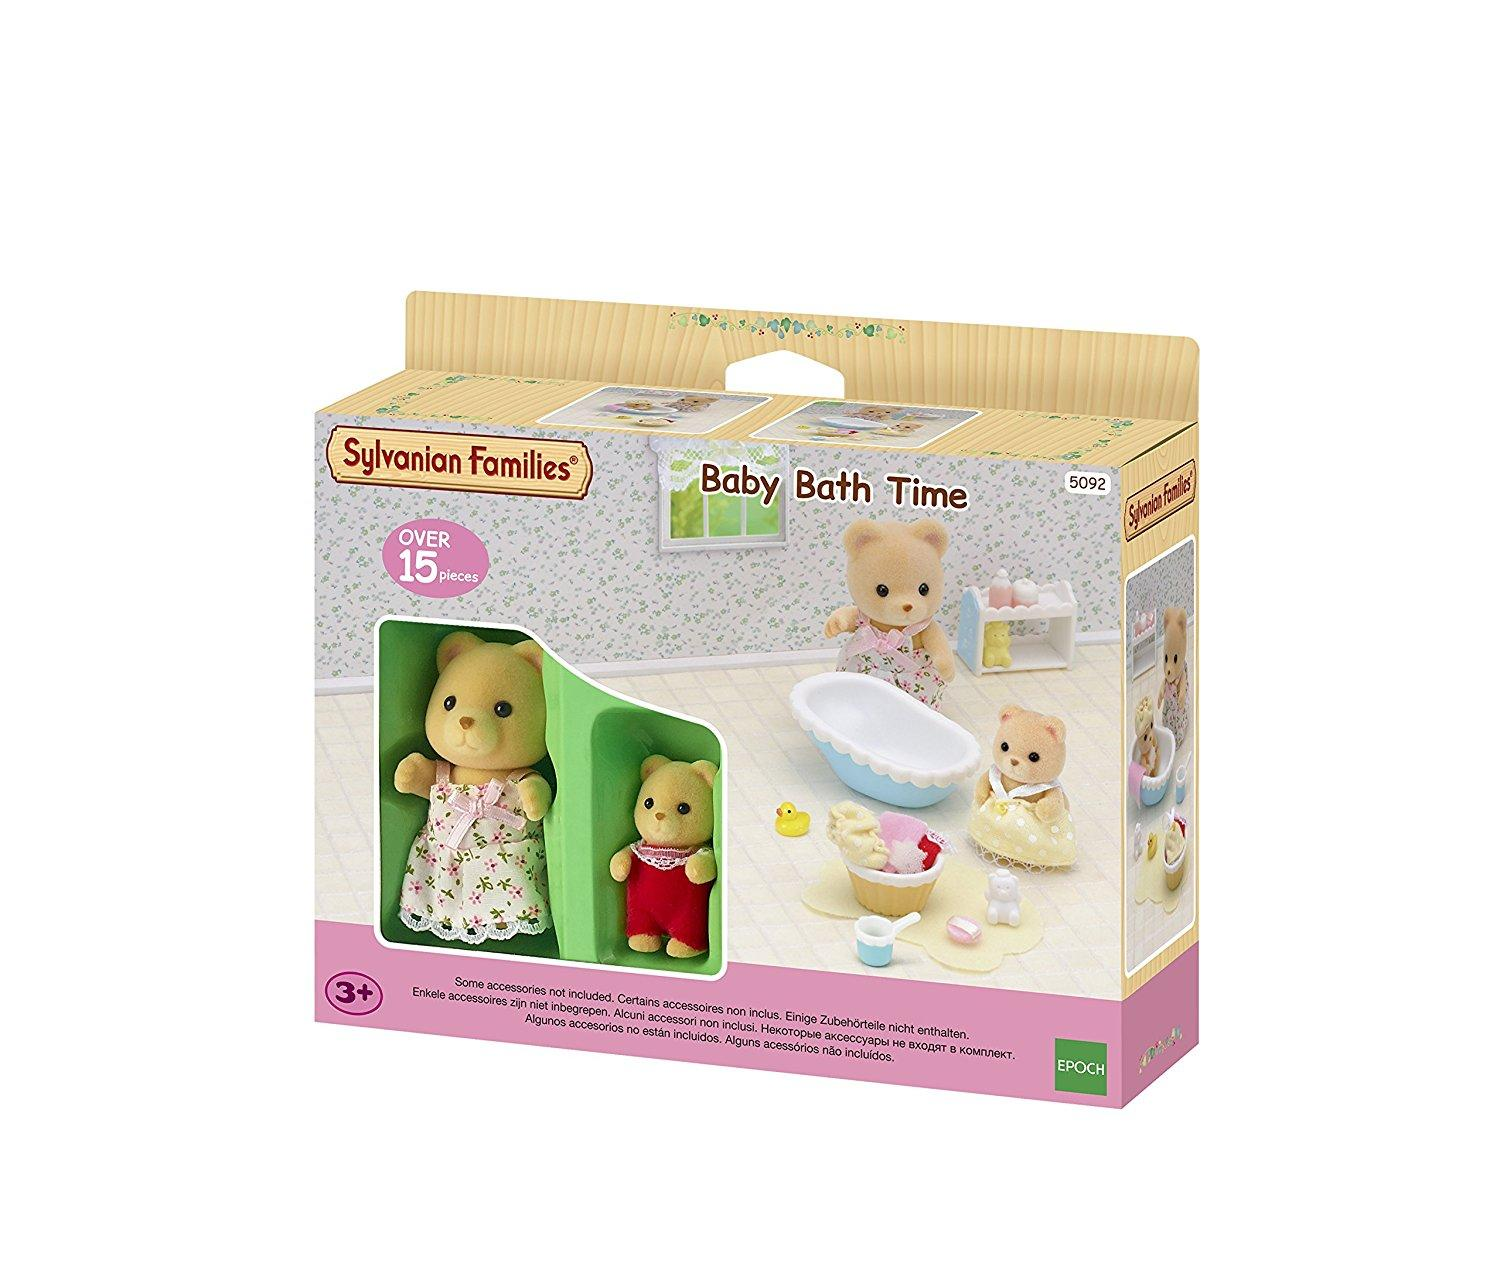 Sylvanian Families Baby Bath Time (5092)